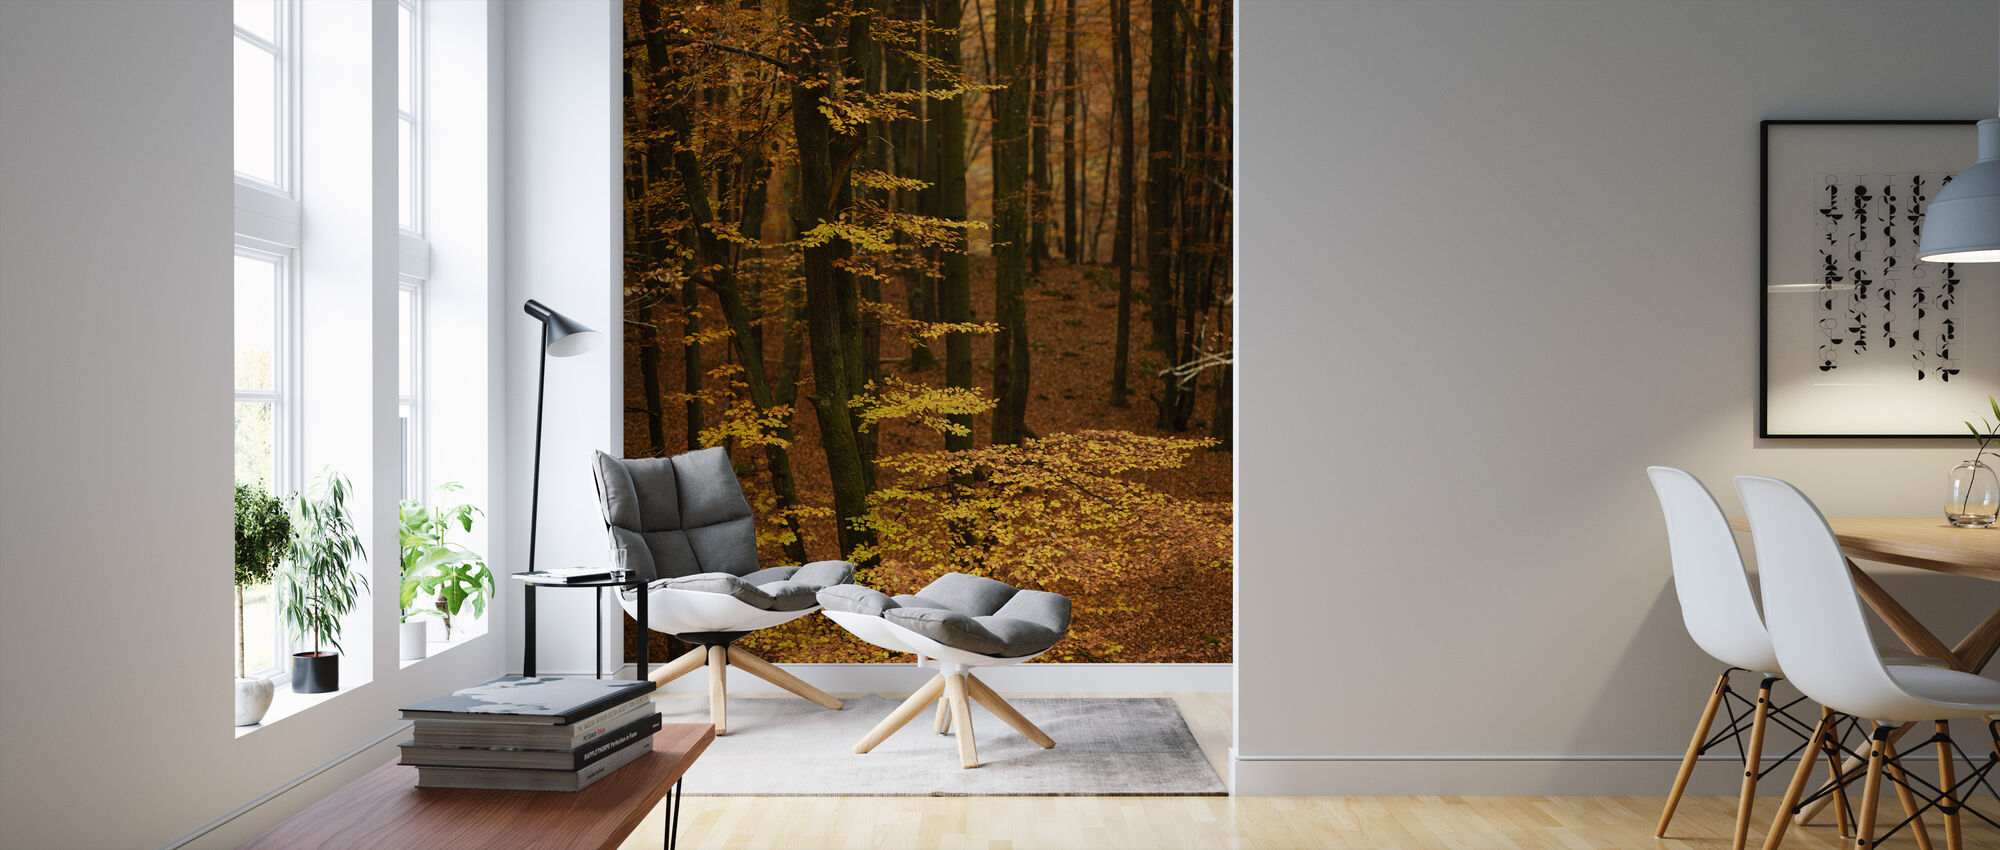 Autumn Forest - Wallpaper - Living Room